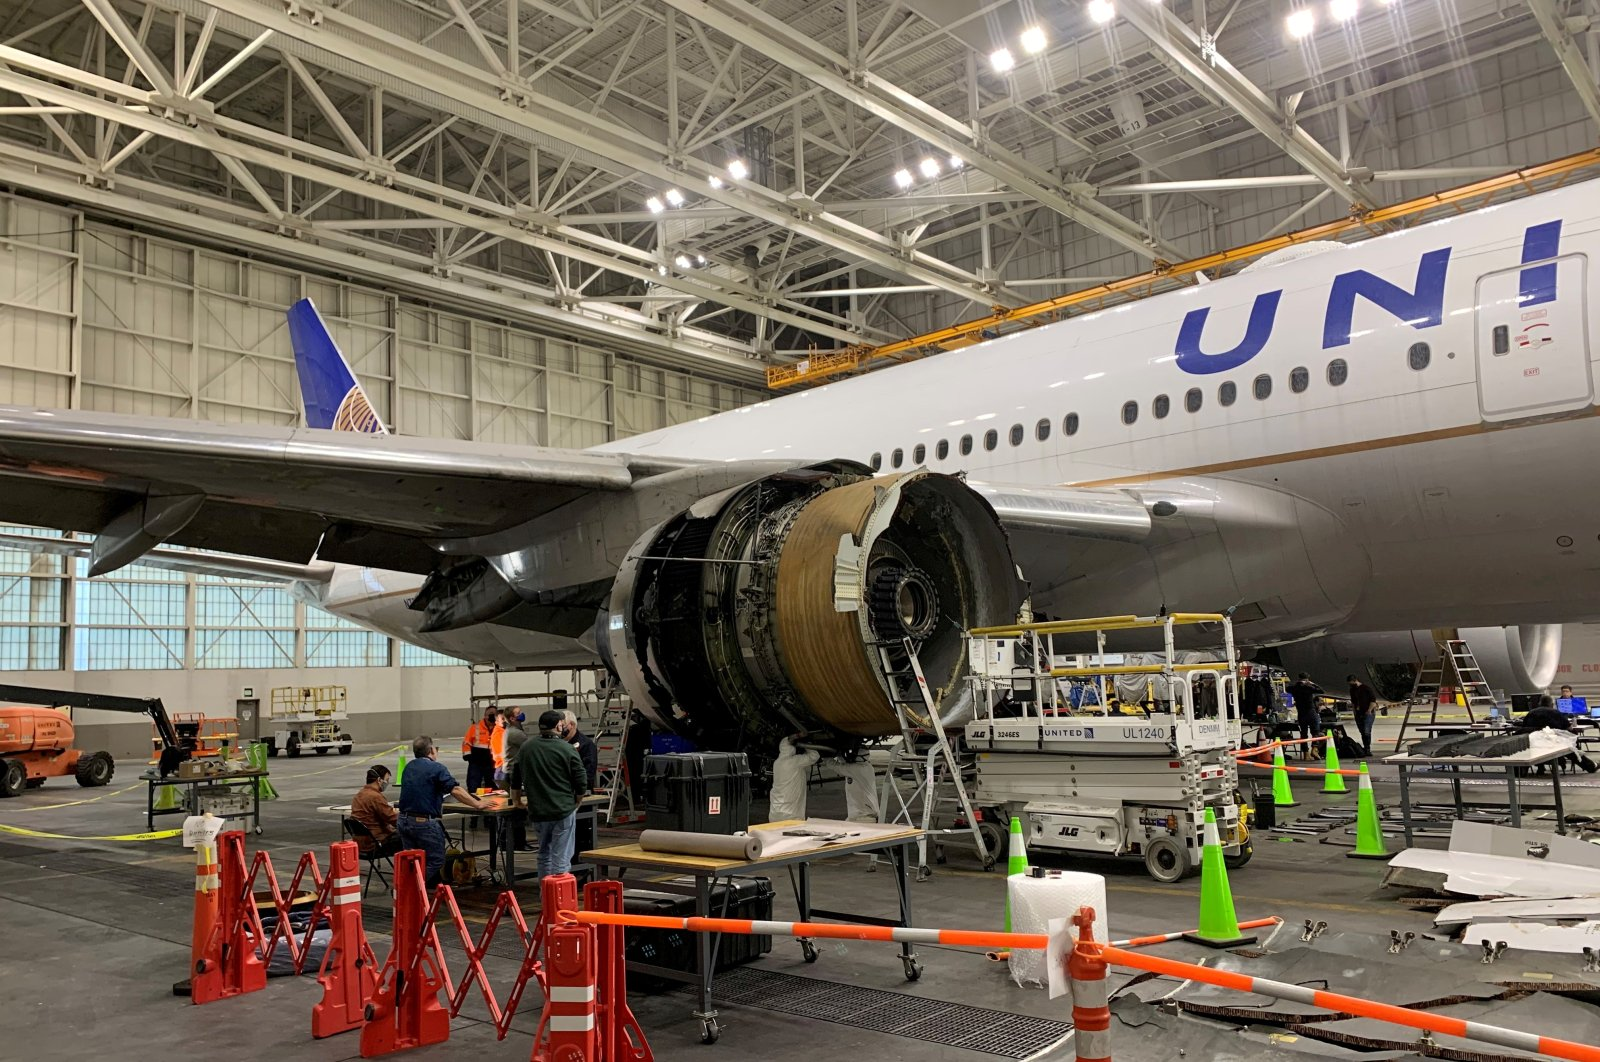 The damaged starboard engine of United Airlines flight 328, a Boeing 777-200, is seen following a Feb. 20 engine failure incident, in a hangar at Denver International Airport in Denver, Colorado, the U.S., Feb. 22, 2021. (Reuters Photo)